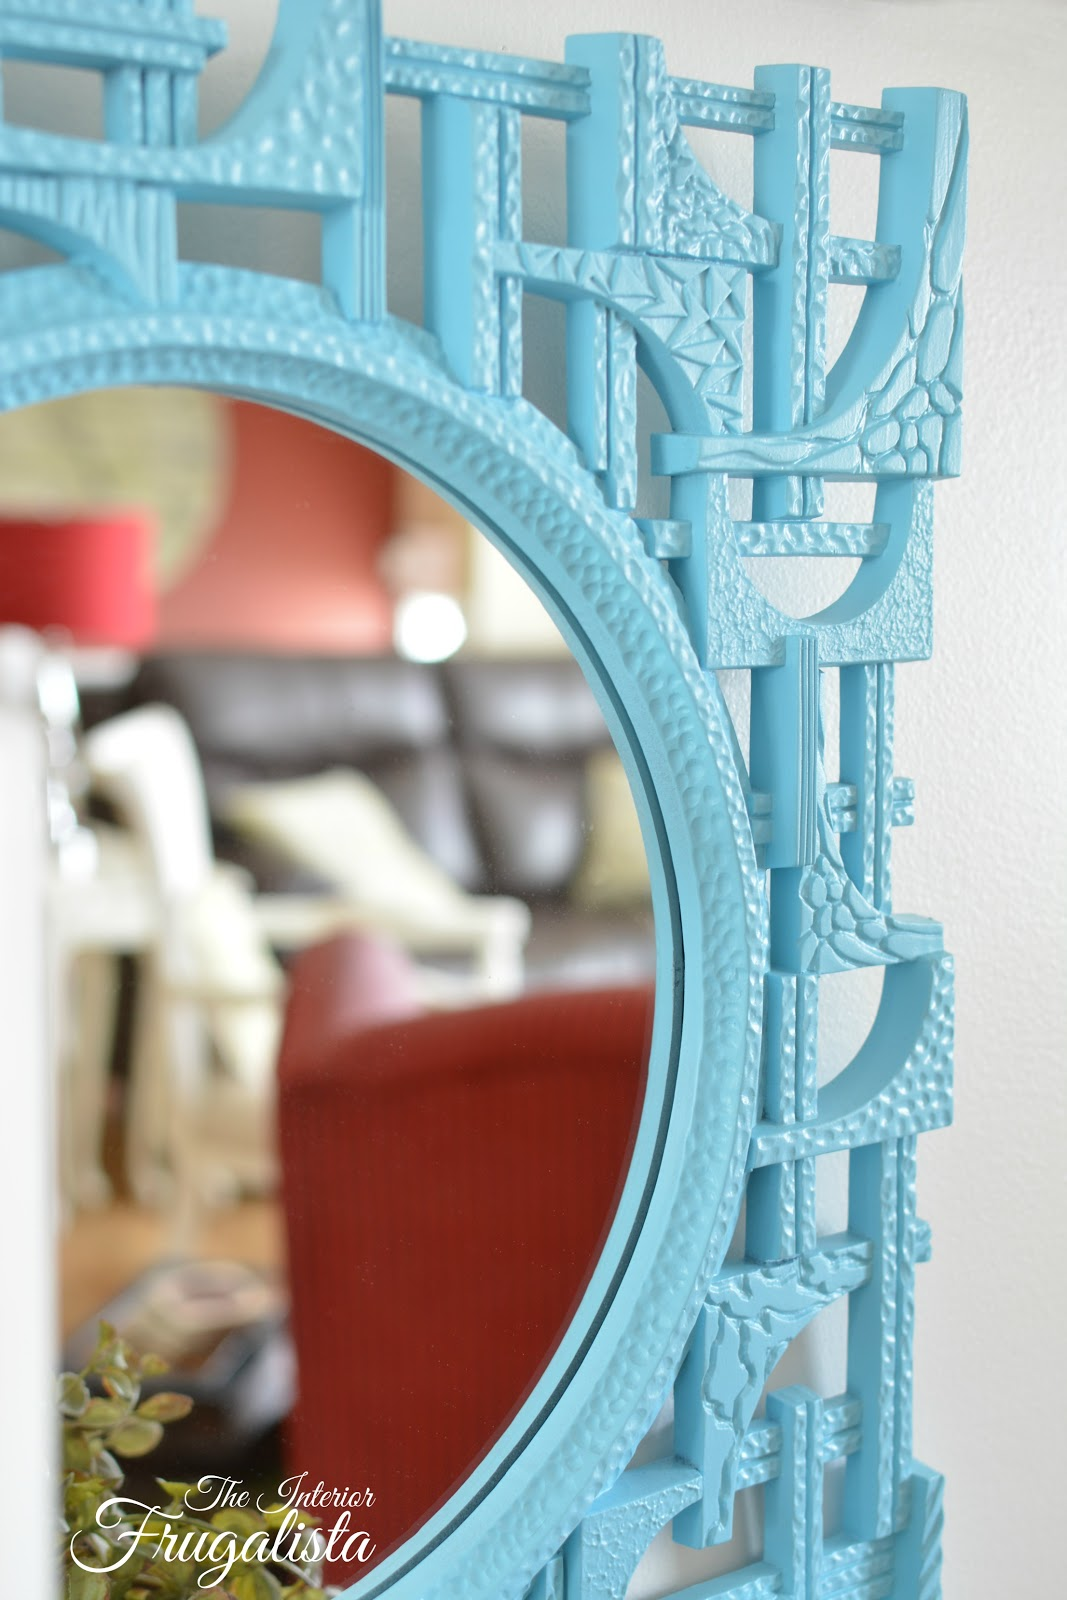 How to quickly update a 1970s mid-century modern Coppercraft Guild Mirror found at Goodwill for $5 in bold colors for fresh modern budget wall decor.